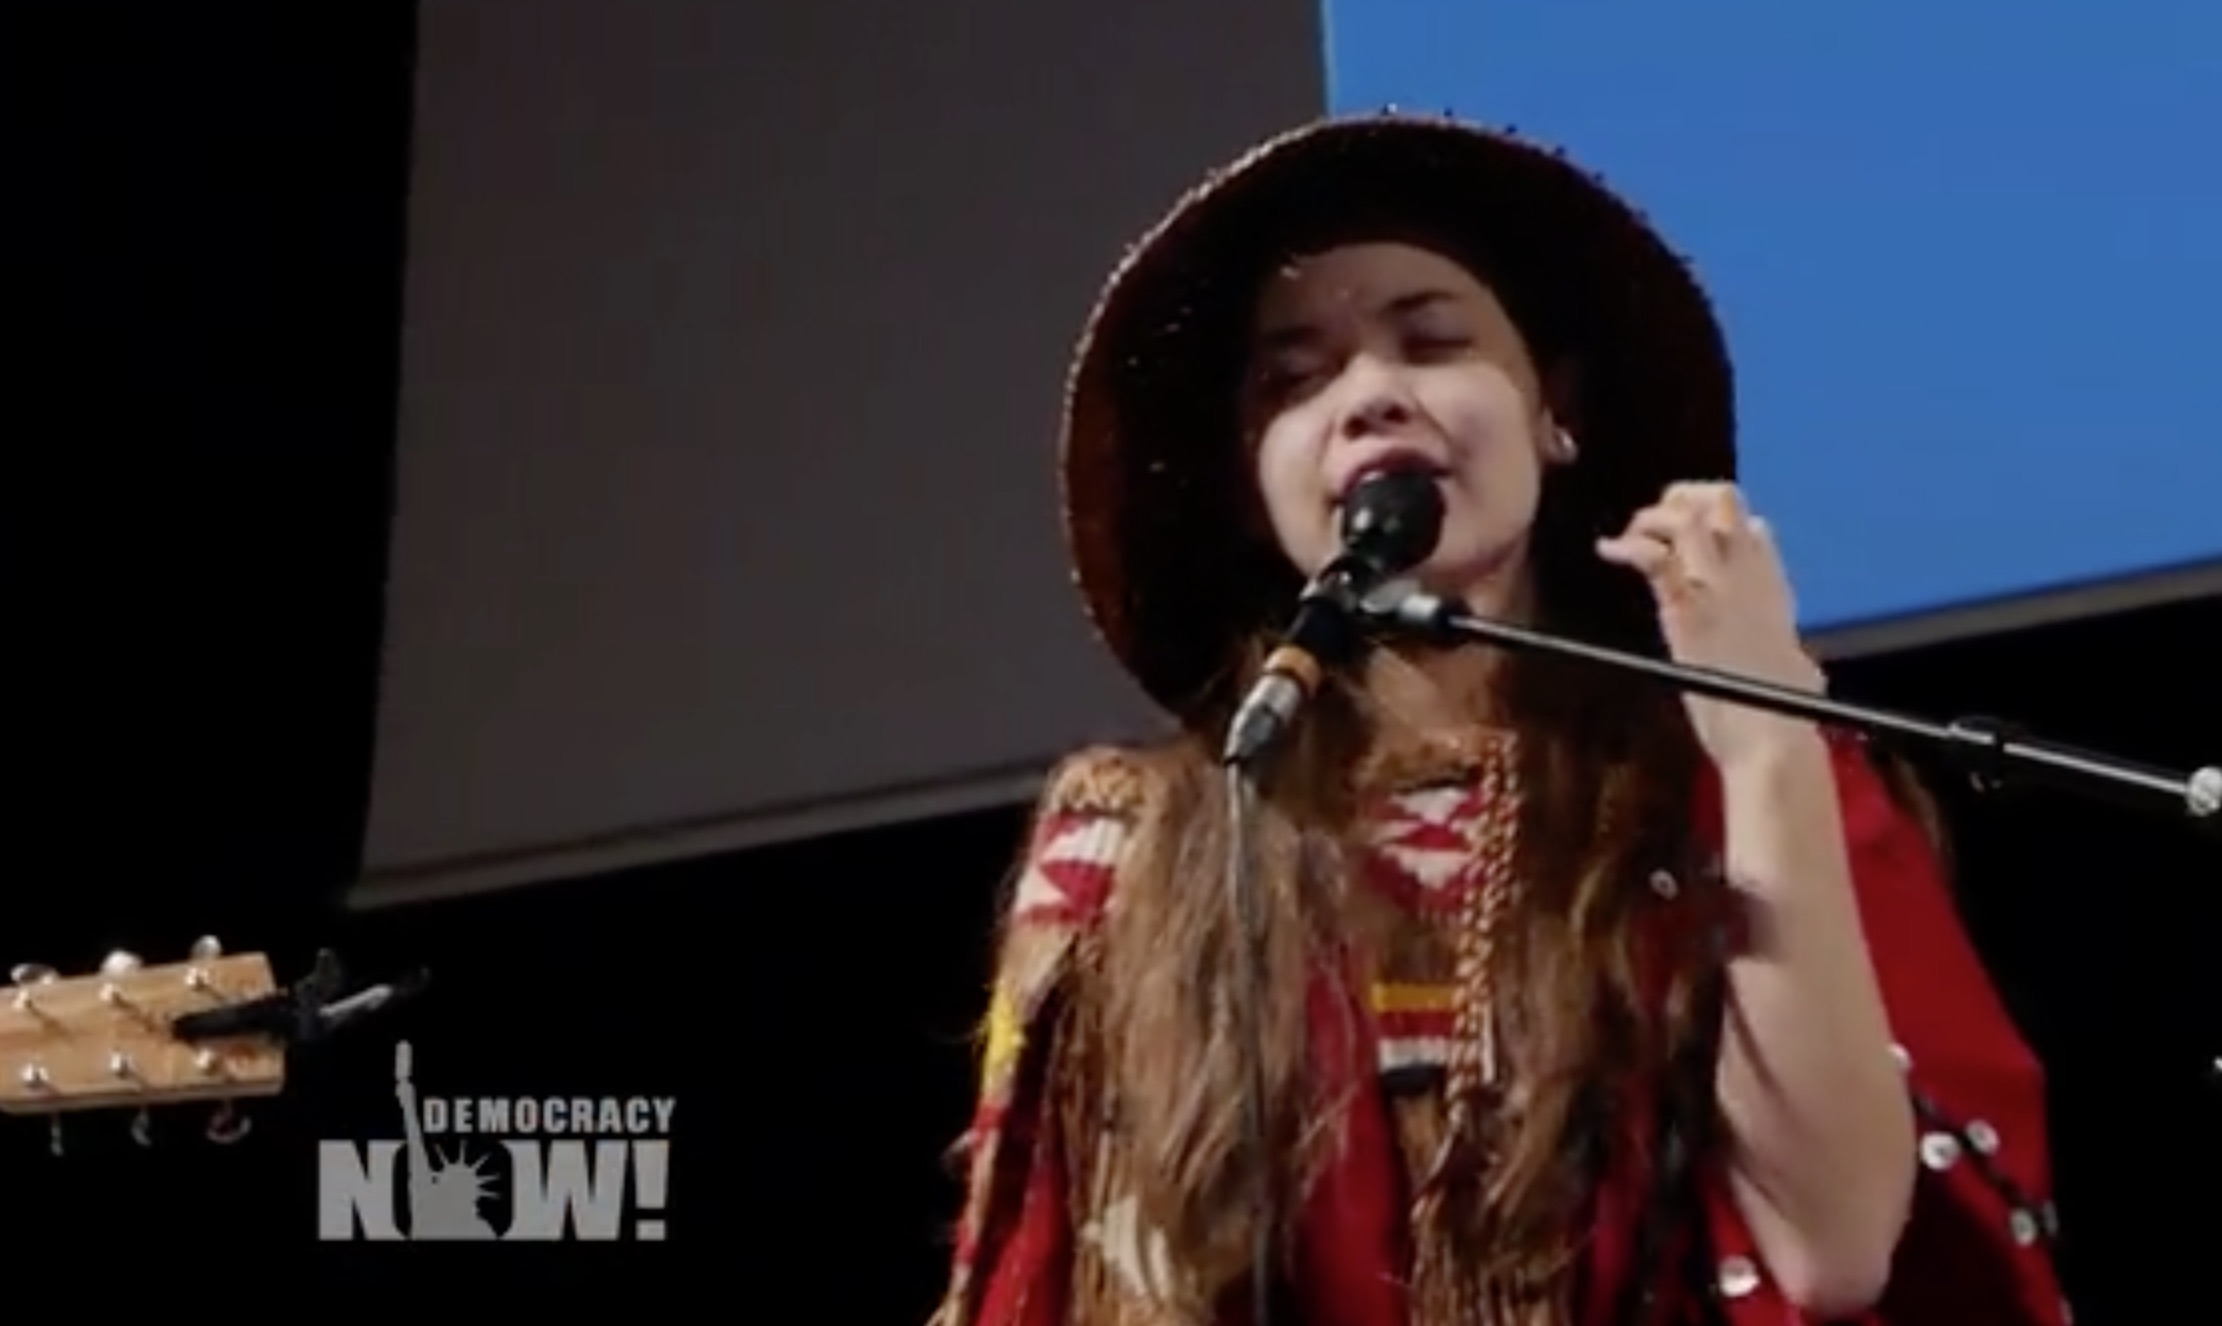 This 14-year-old First Nation advocate has a song that will move you to tears